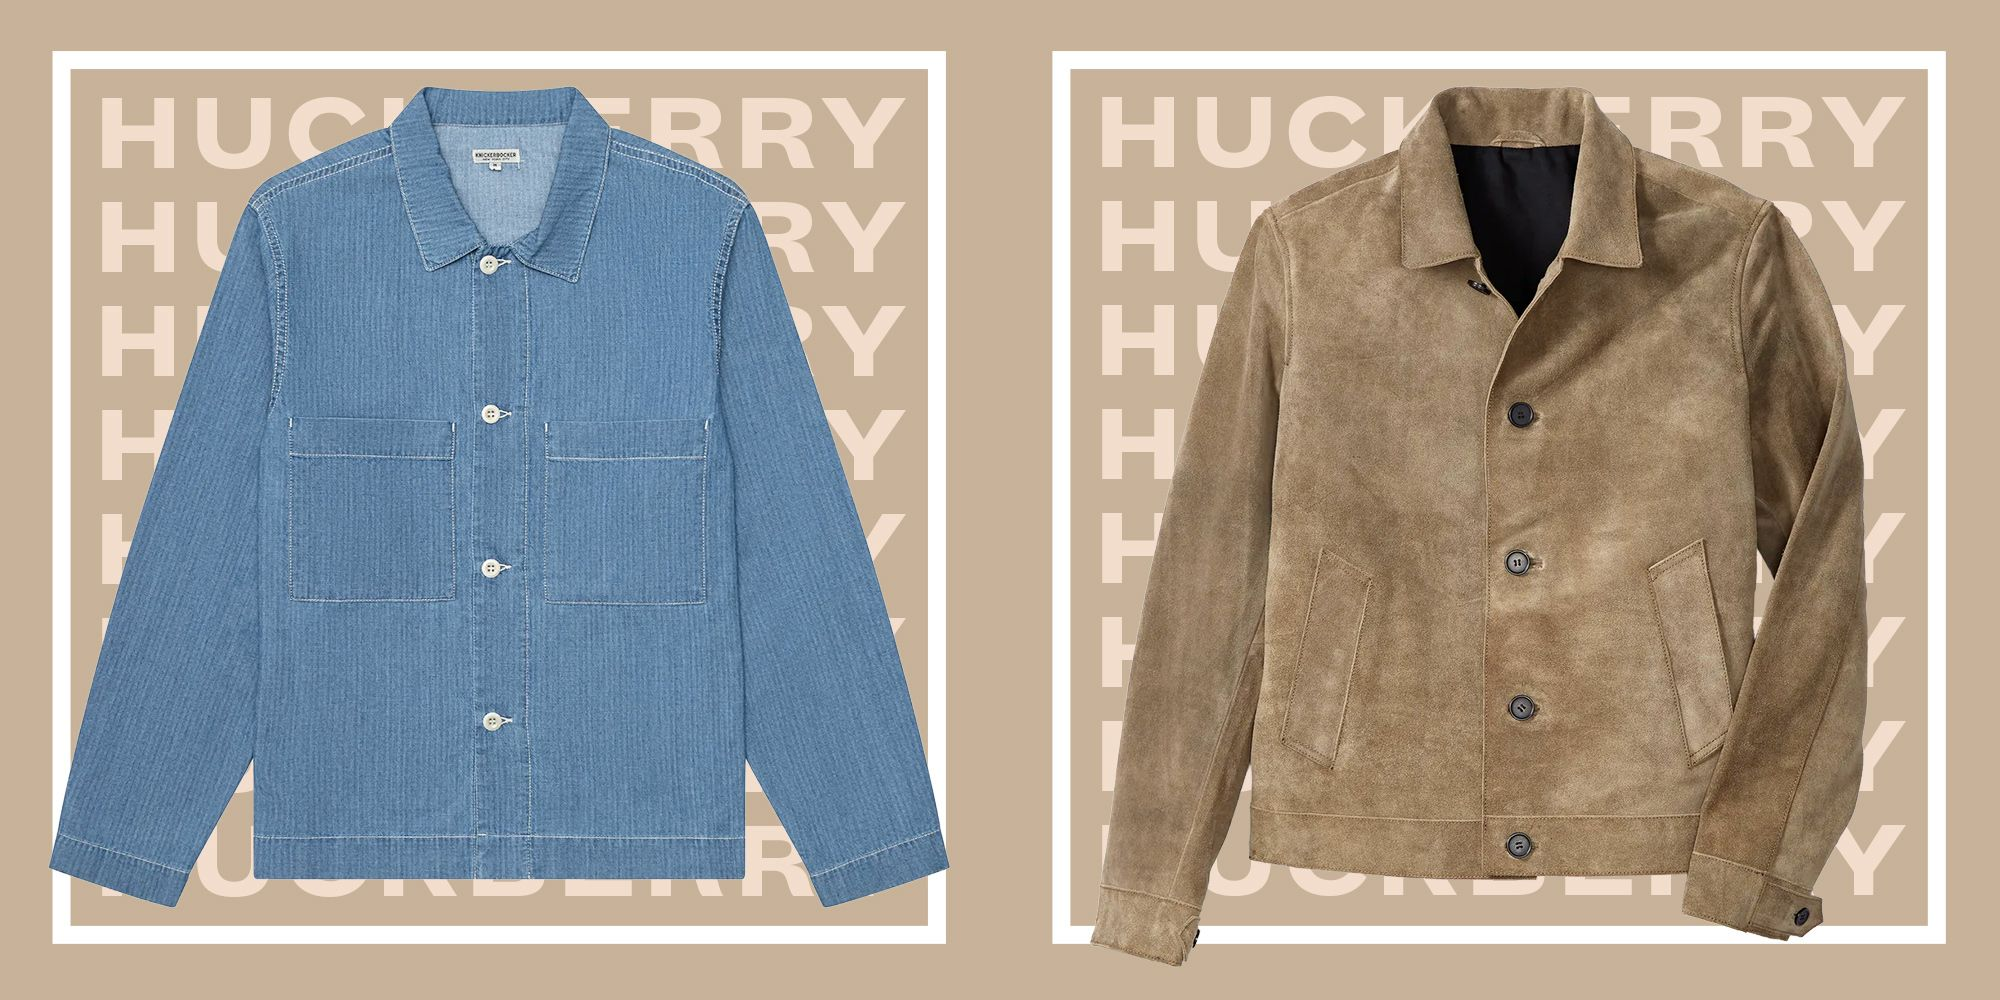 Huckberry's Latest Flash Sale Features All the Spring Style Inspiration You Need